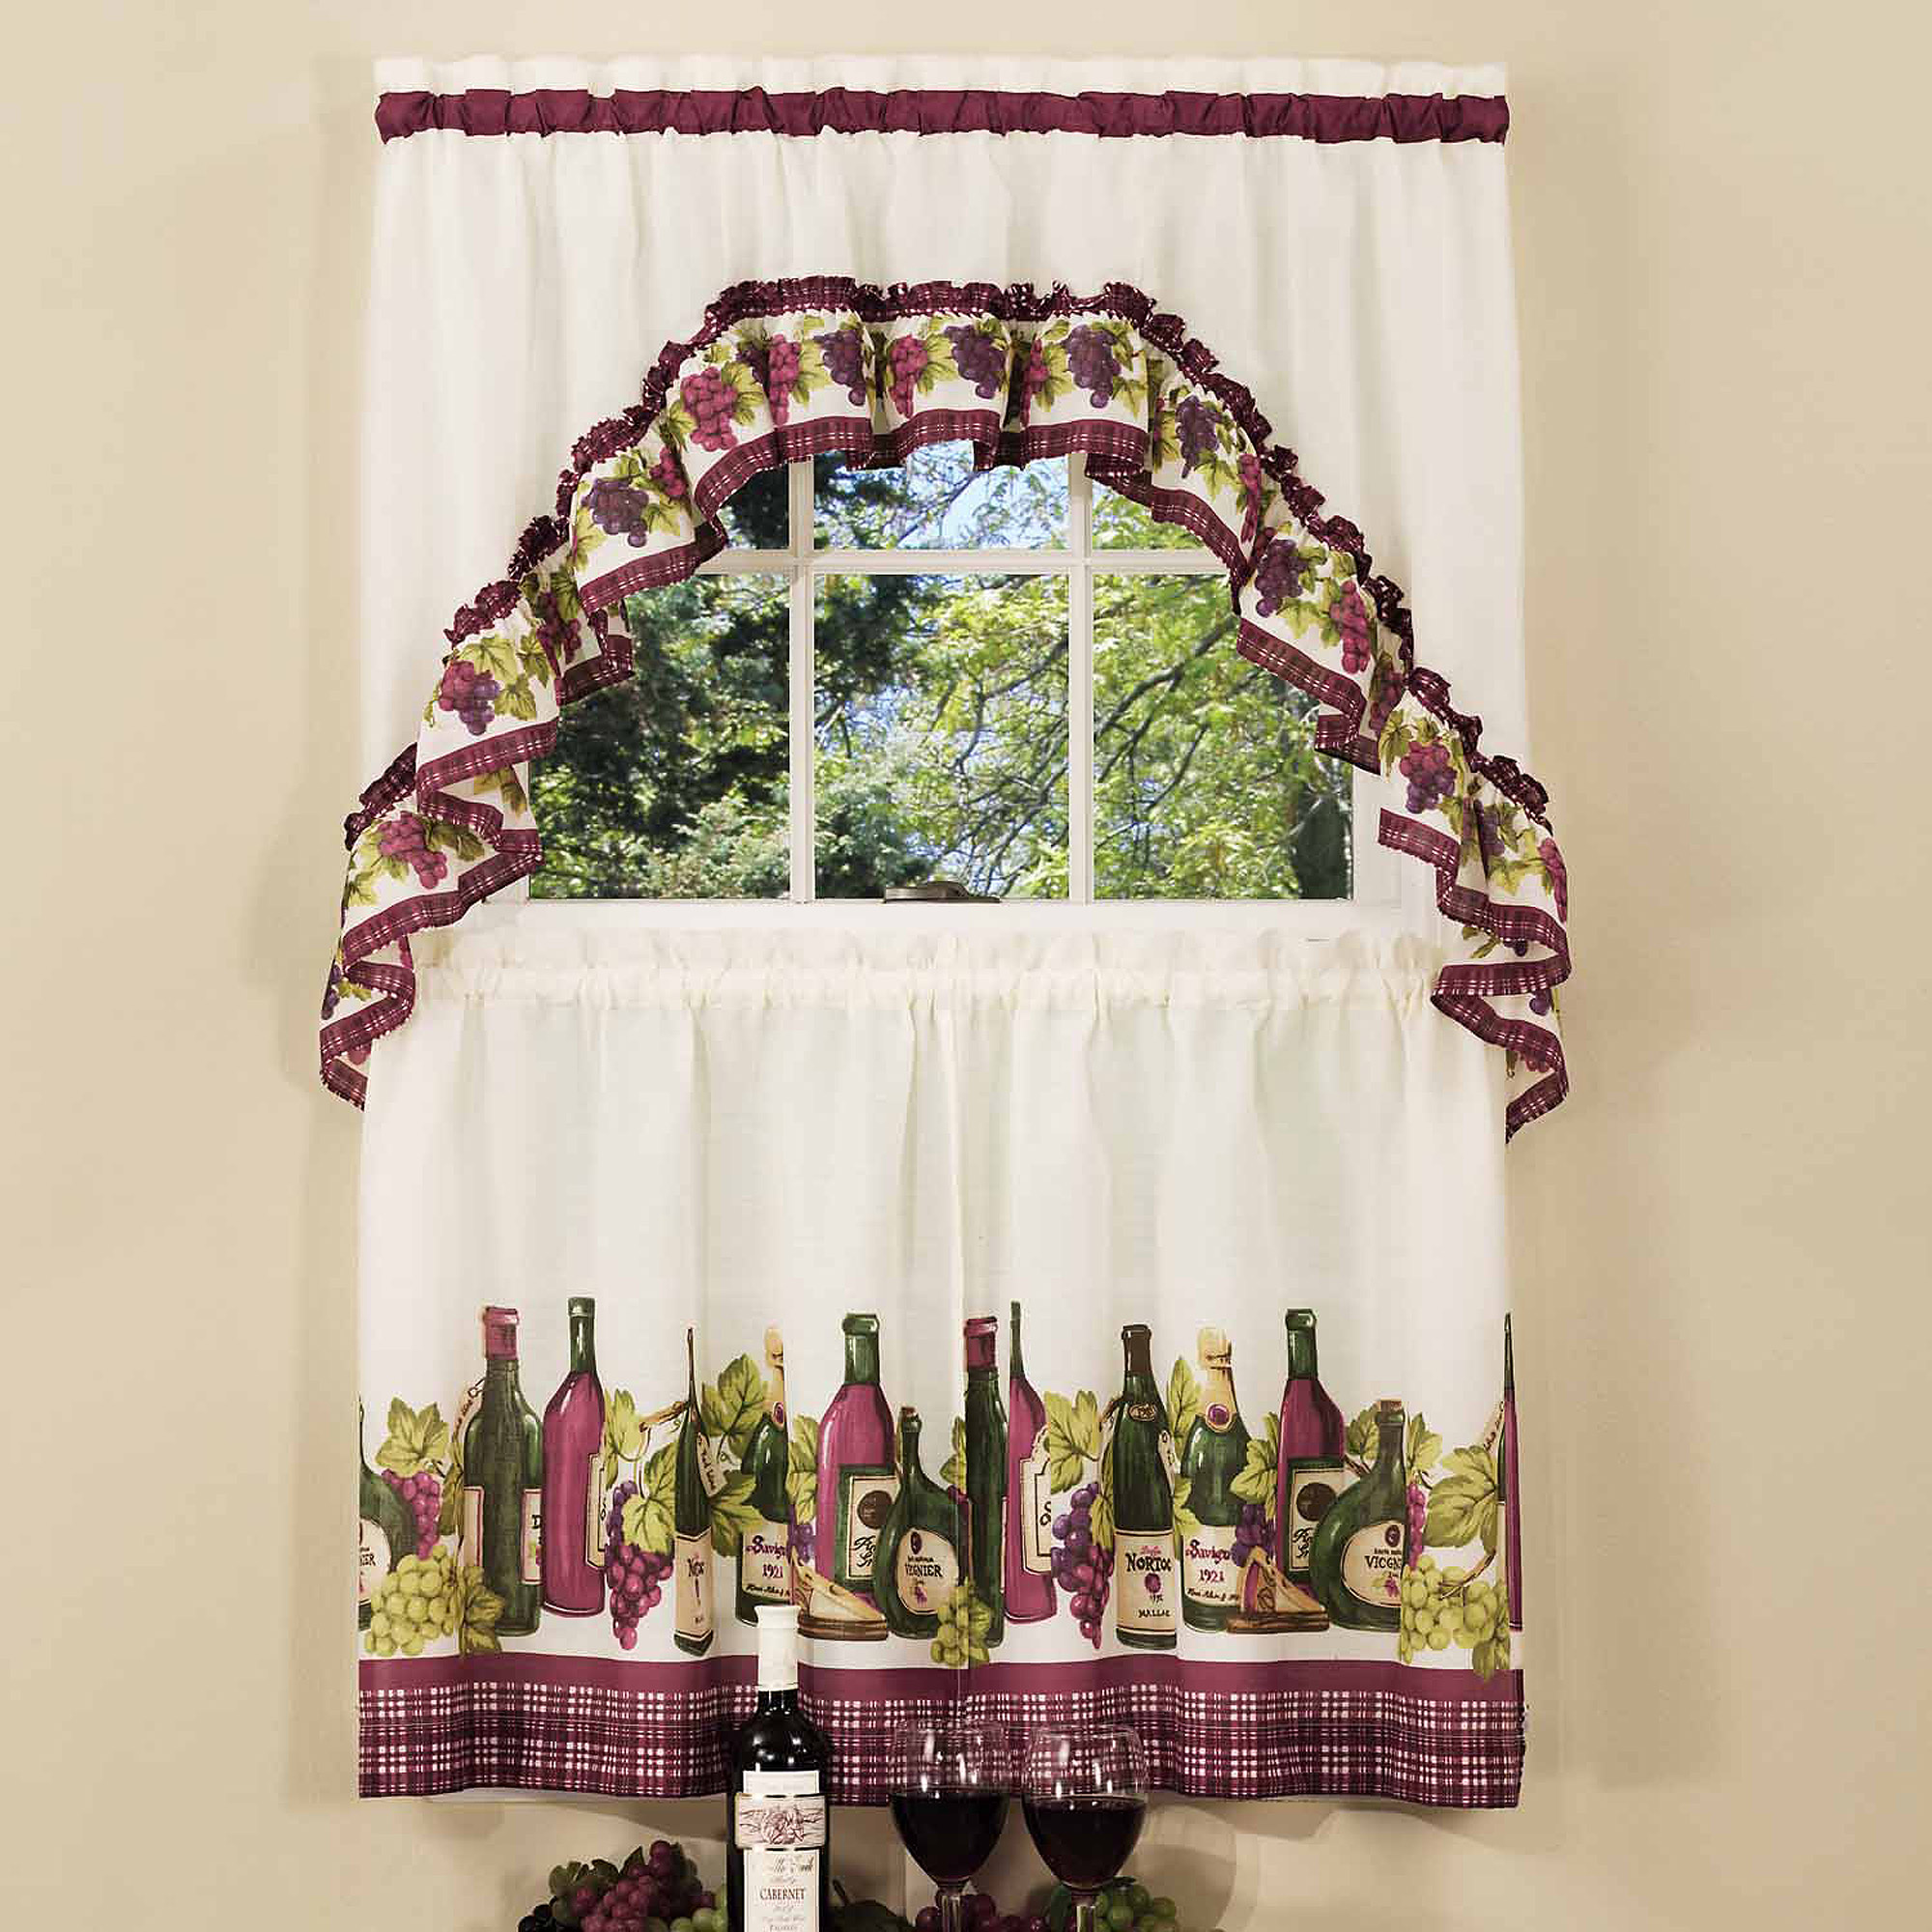 Chardonnay Kitchen Curtain & Swag Set, 1 Each